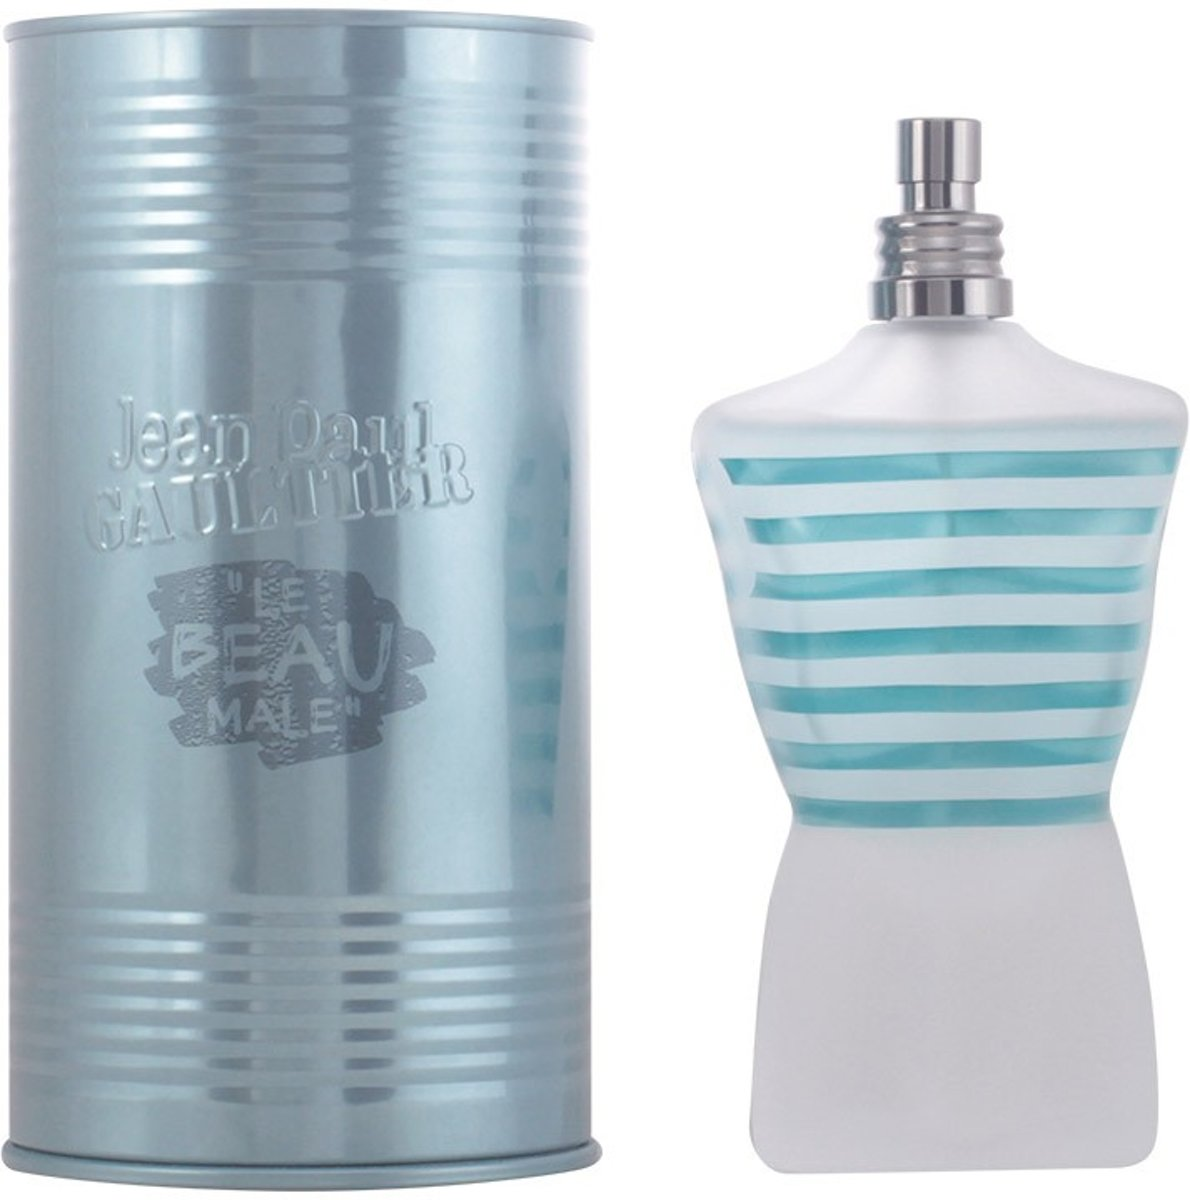 MULTI BUNDEL 2 stuks LE BEAU MALE Eau de Toilette Spray 200 ml